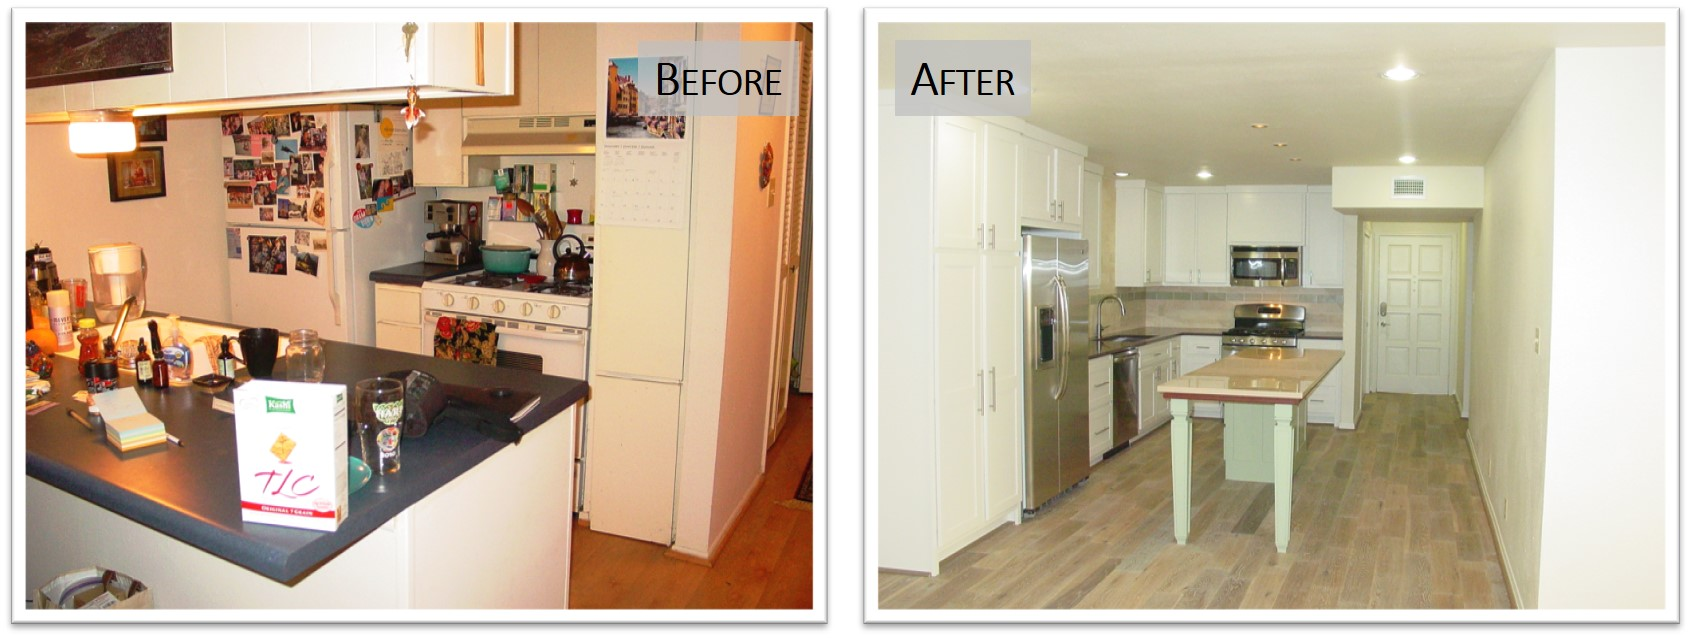 3431 NH, Kitchen, Before and After, Bear Creek Homes.jpg